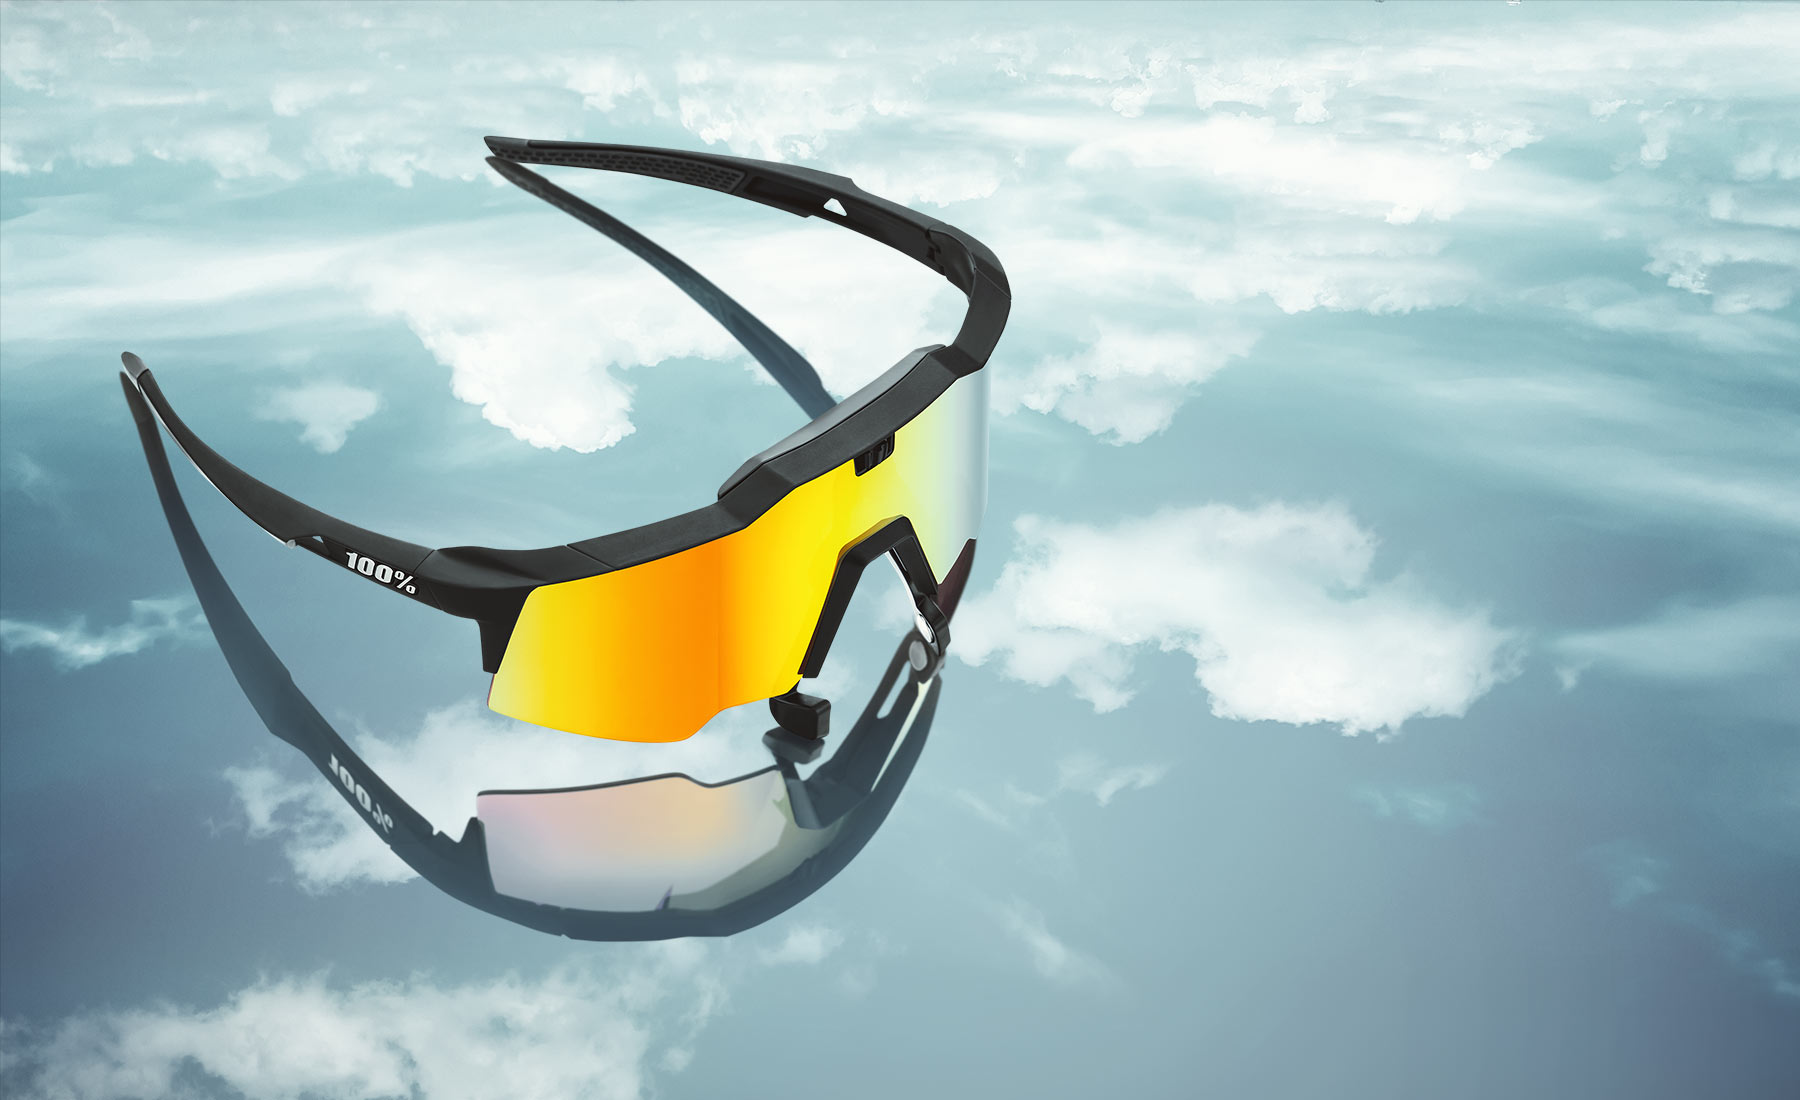 5495f5b5e0 Peter Sagan s new 100% glasses use nose magnets to help open his ...